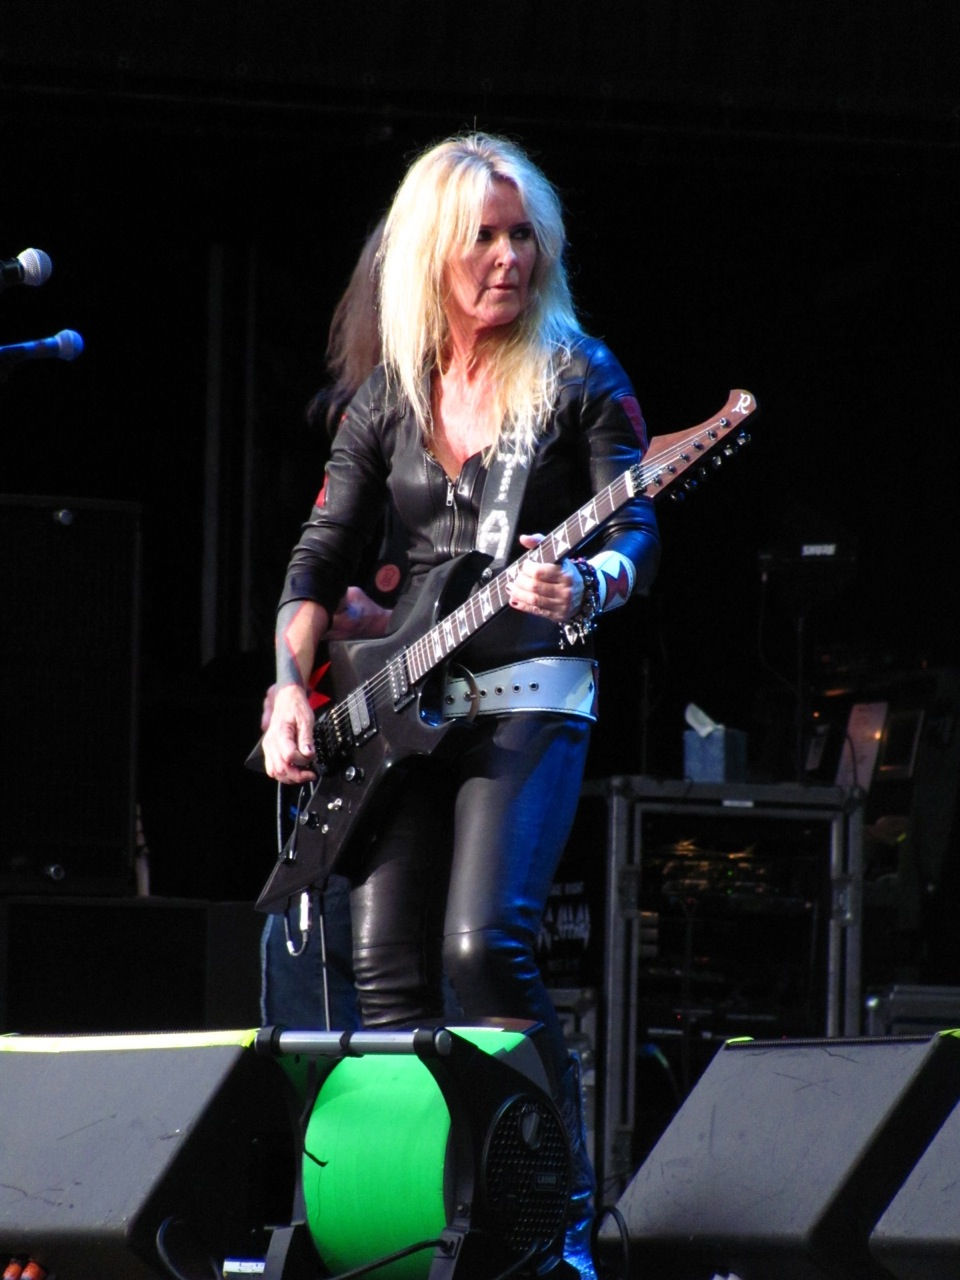 Photo of Lita Ford: American rock musician, former member of The Runaways